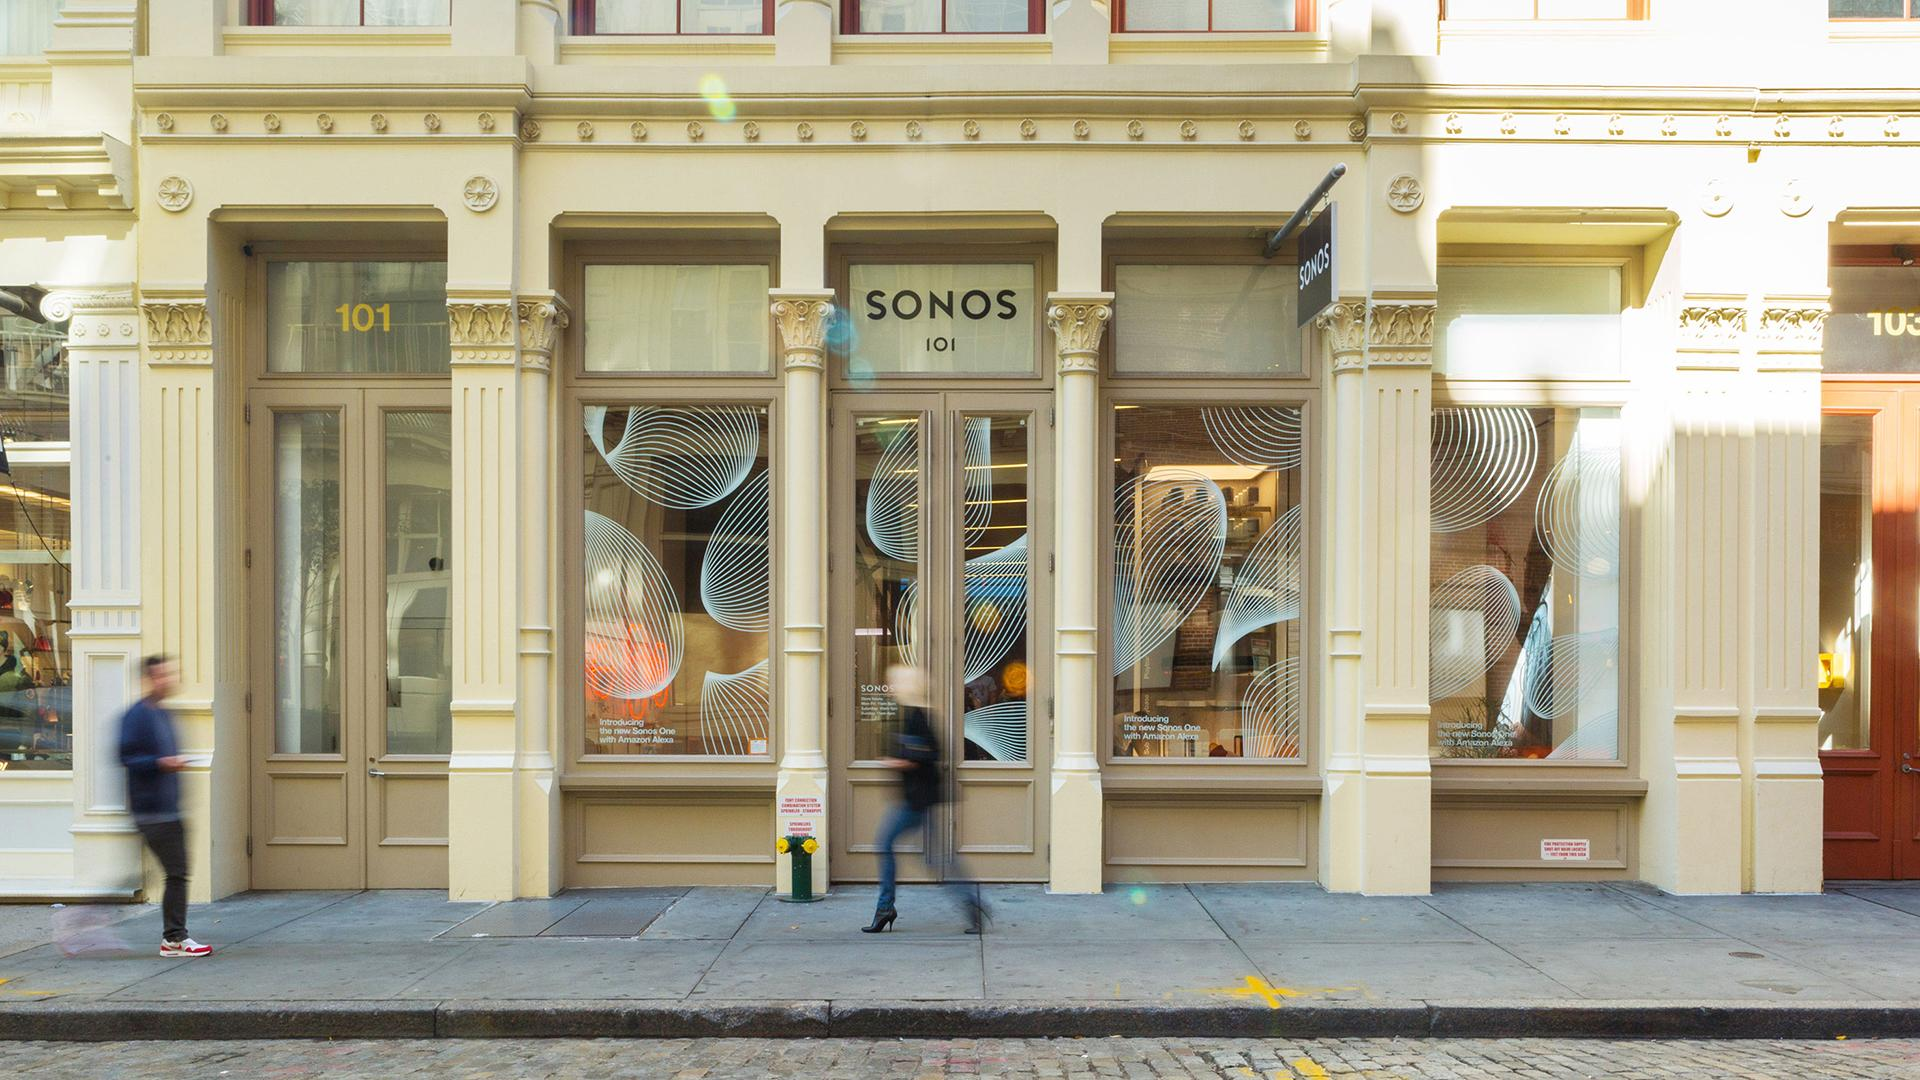 Sonos soho environmental design window